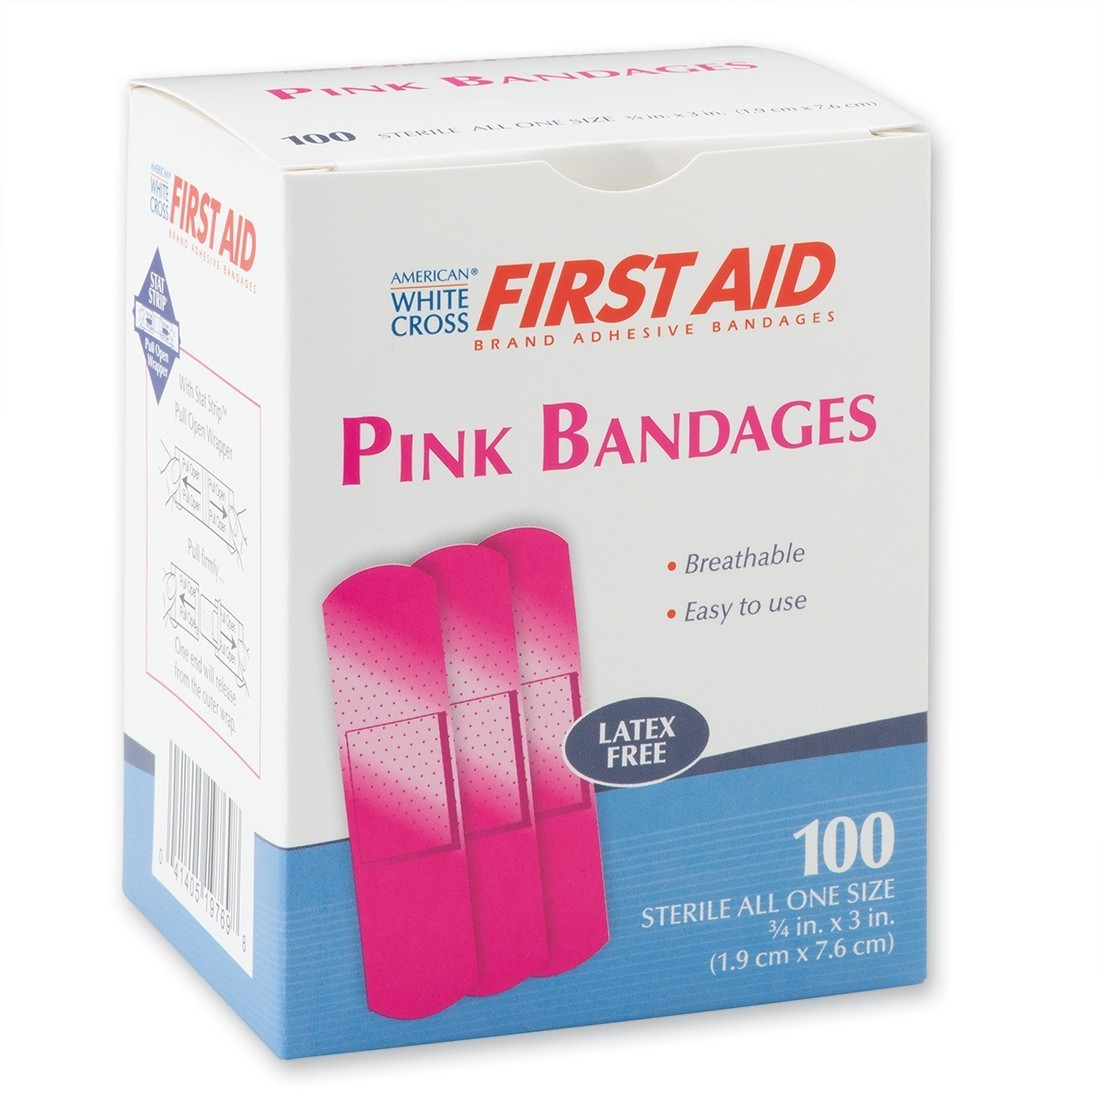 First Aid Pink Bandages [image]